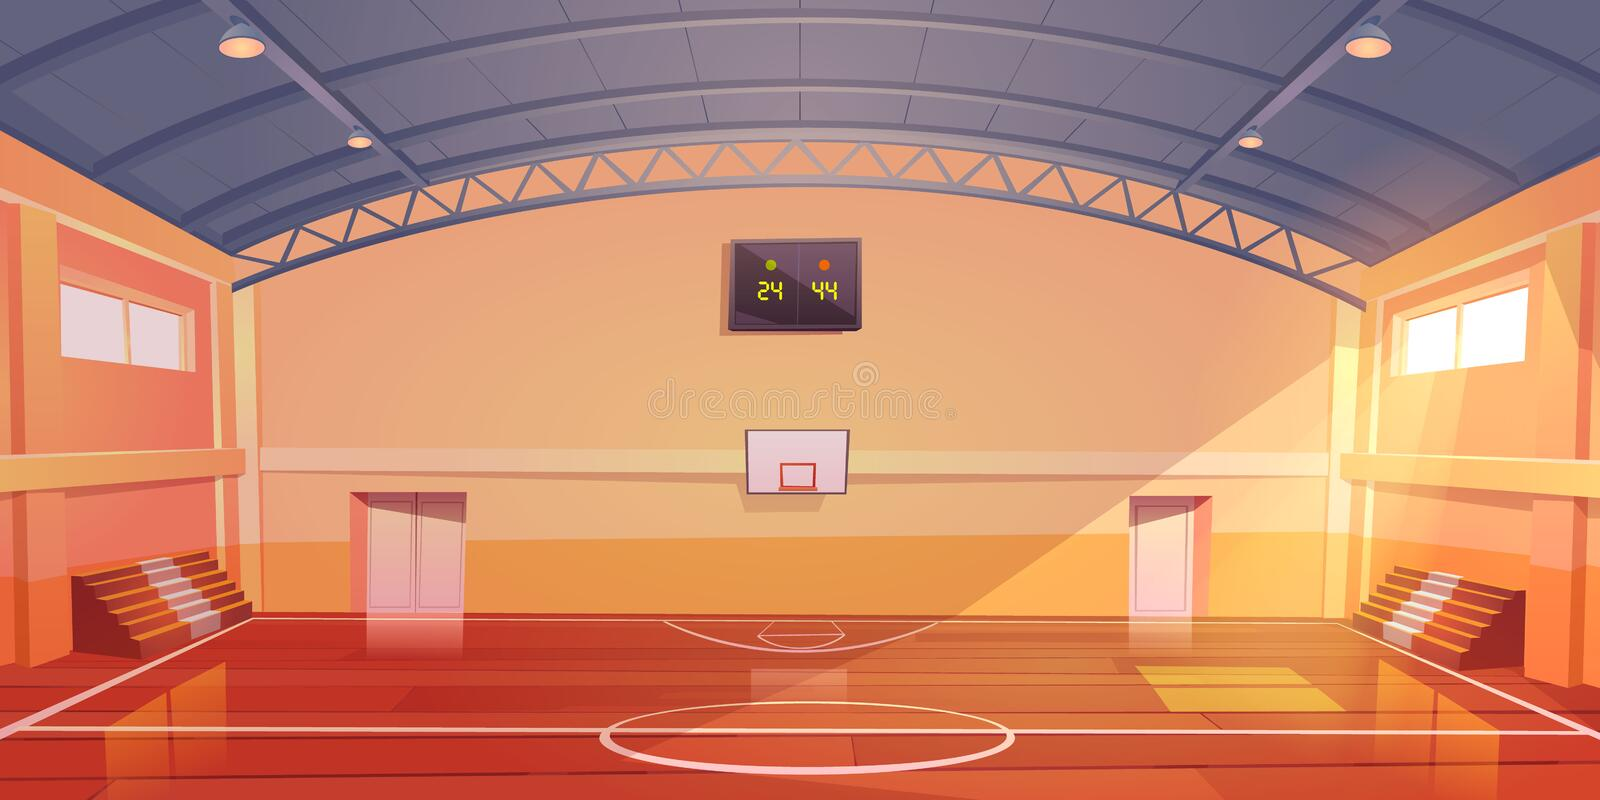 Indoor Basketball Court Stock Illustrations 727 Indoor Basketball Court Stock Illustrations Vectors Clipart Dreamstime